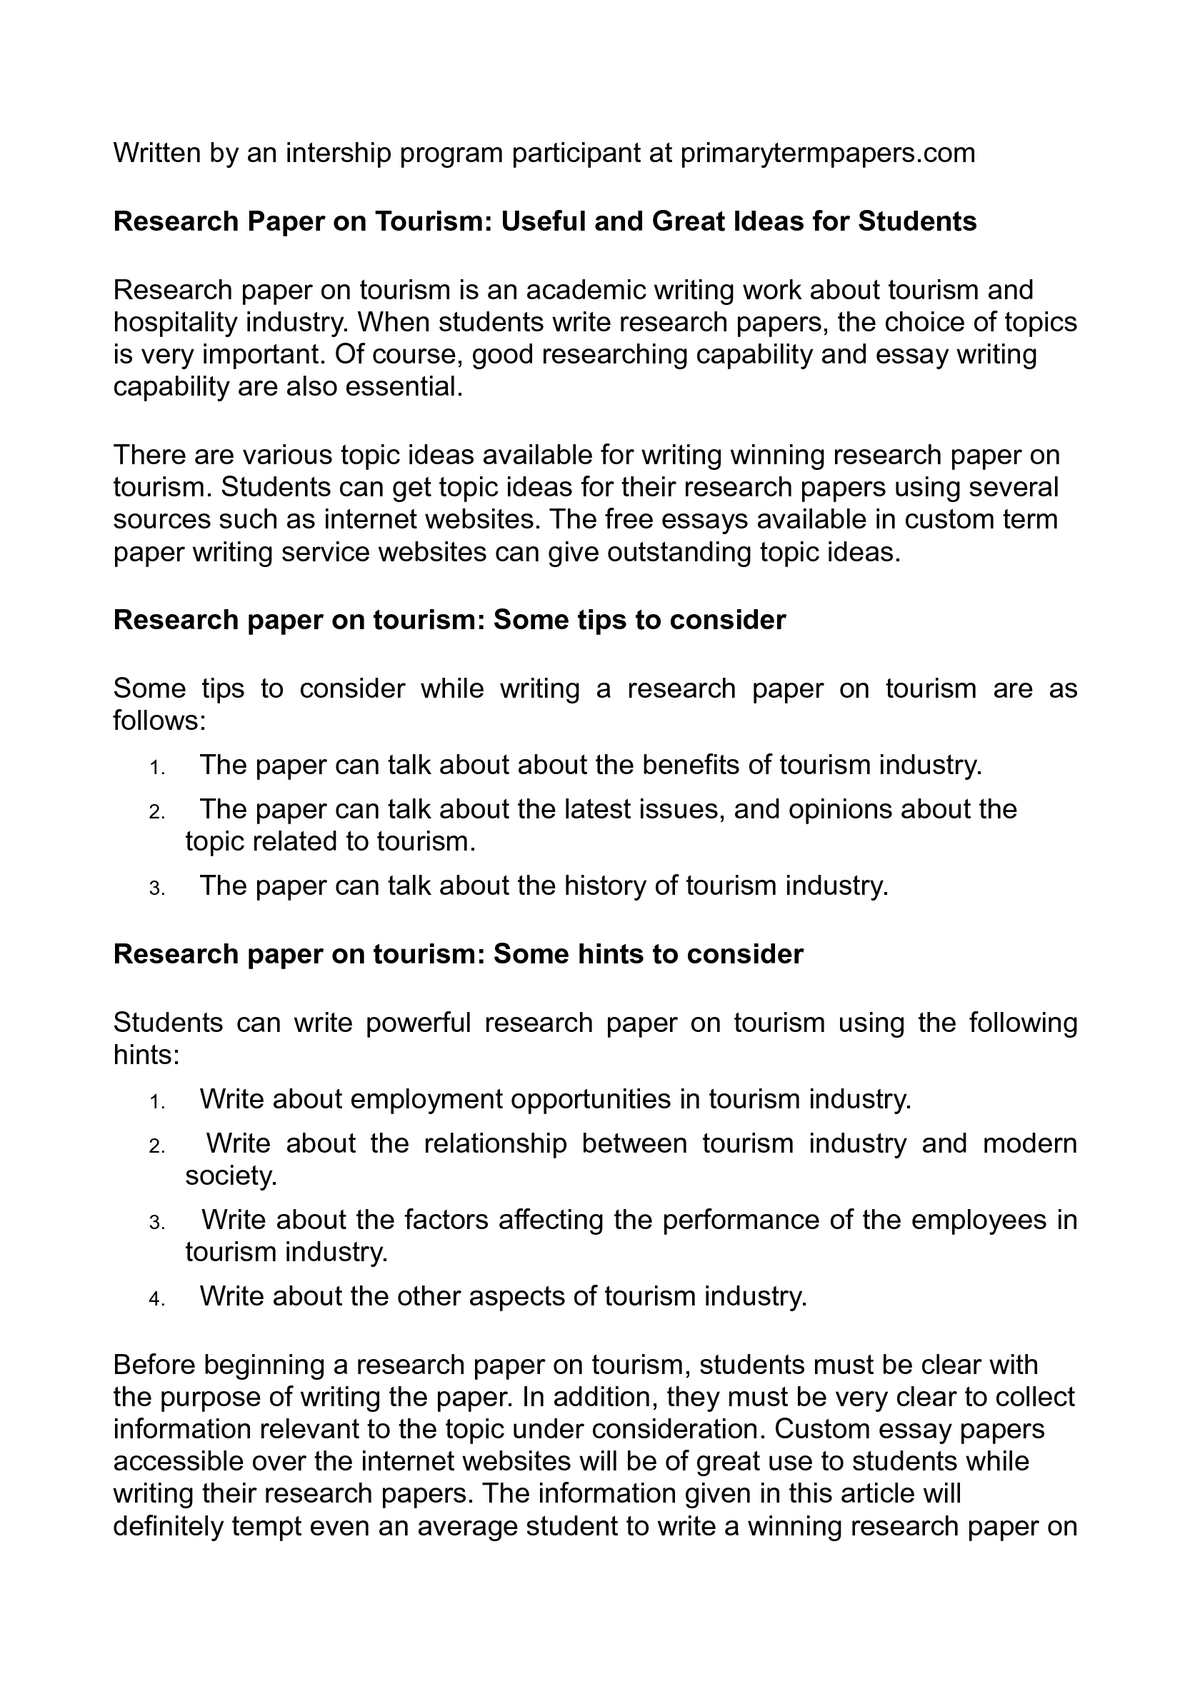 006 P1 Topics To Write Research Paper Fearsome A On Fun Good Essay Ideas Full